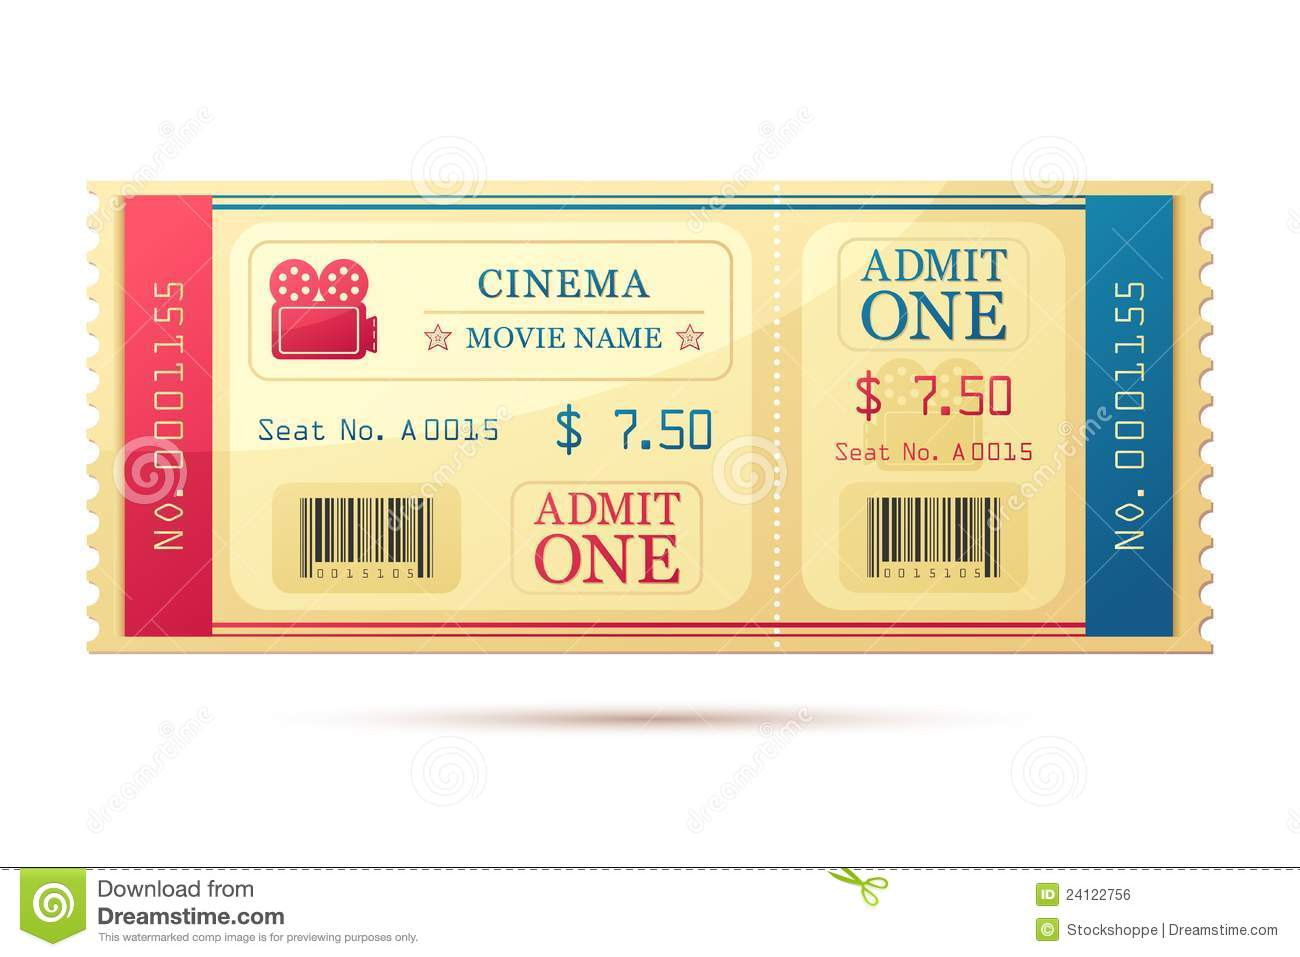 Movie Ticket Royalty Free Stock Image - Image: 24122756